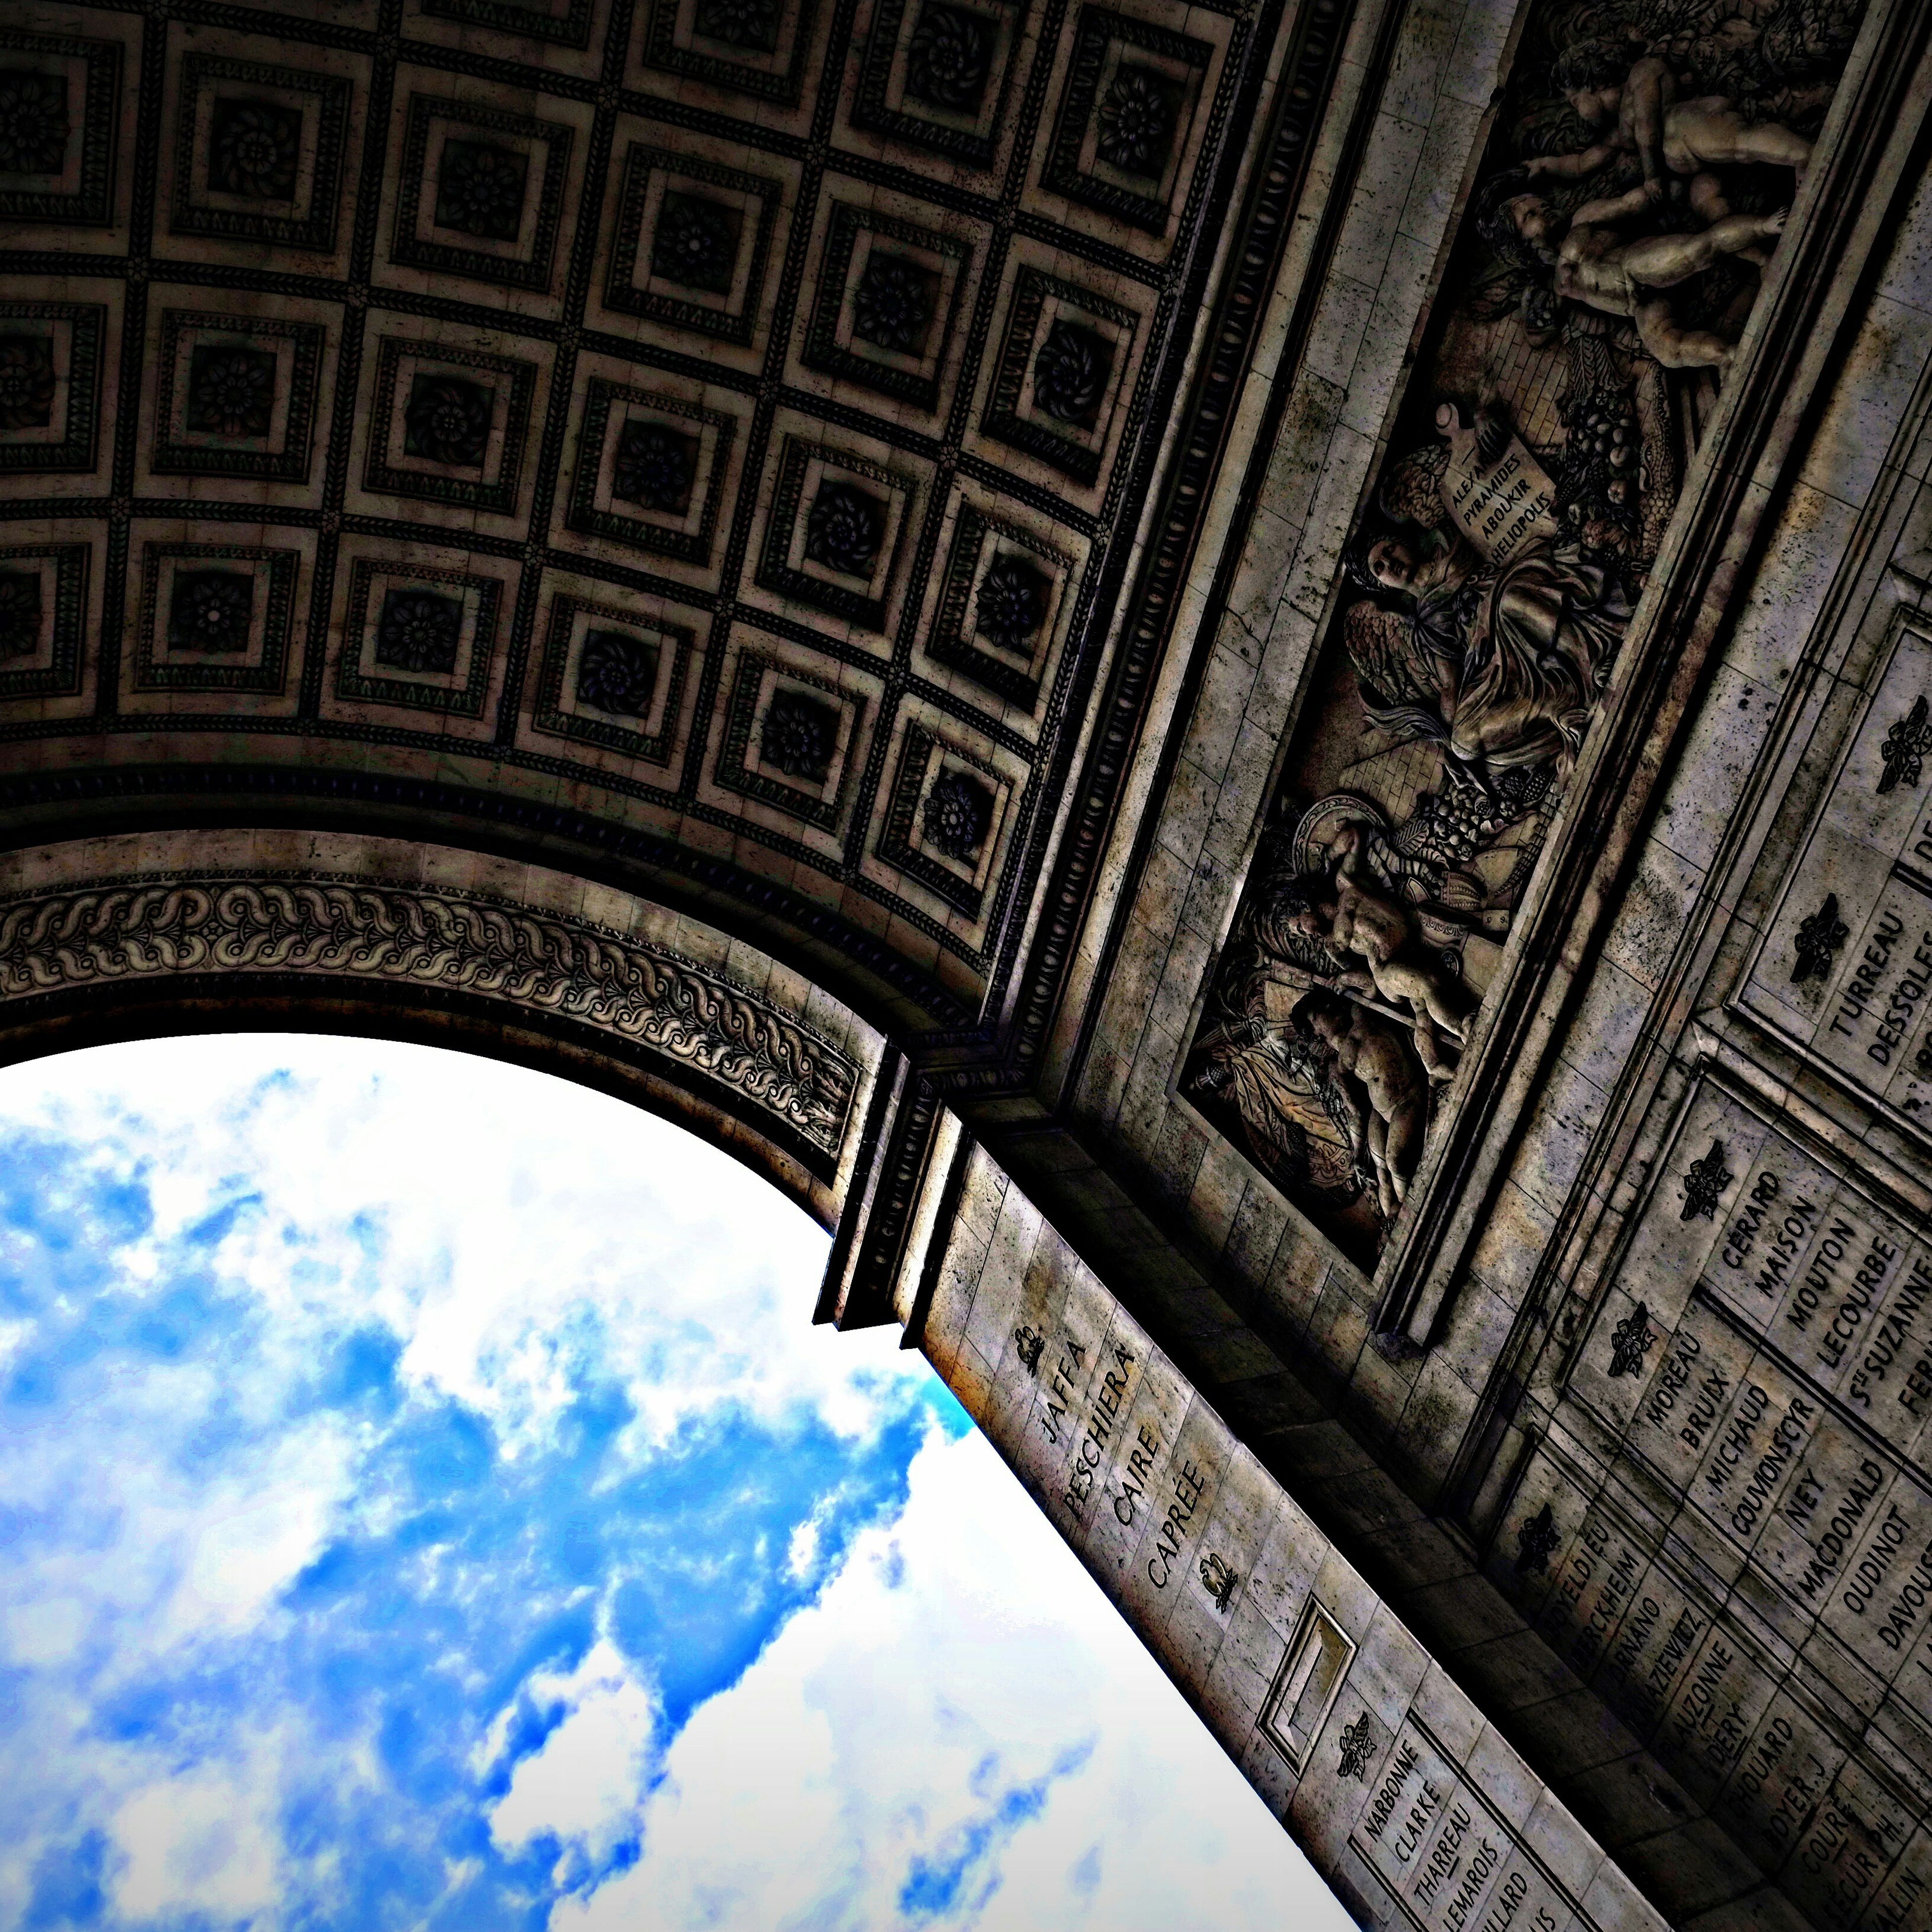 architecture, built structure, low angle view, famous place, history, travel destinations, international landmark, tourism, building exterior, sky, capital cities, arch, travel, architectural feature, cloud - sky, design, ornate, architectural column, art and craft, carving - craft product